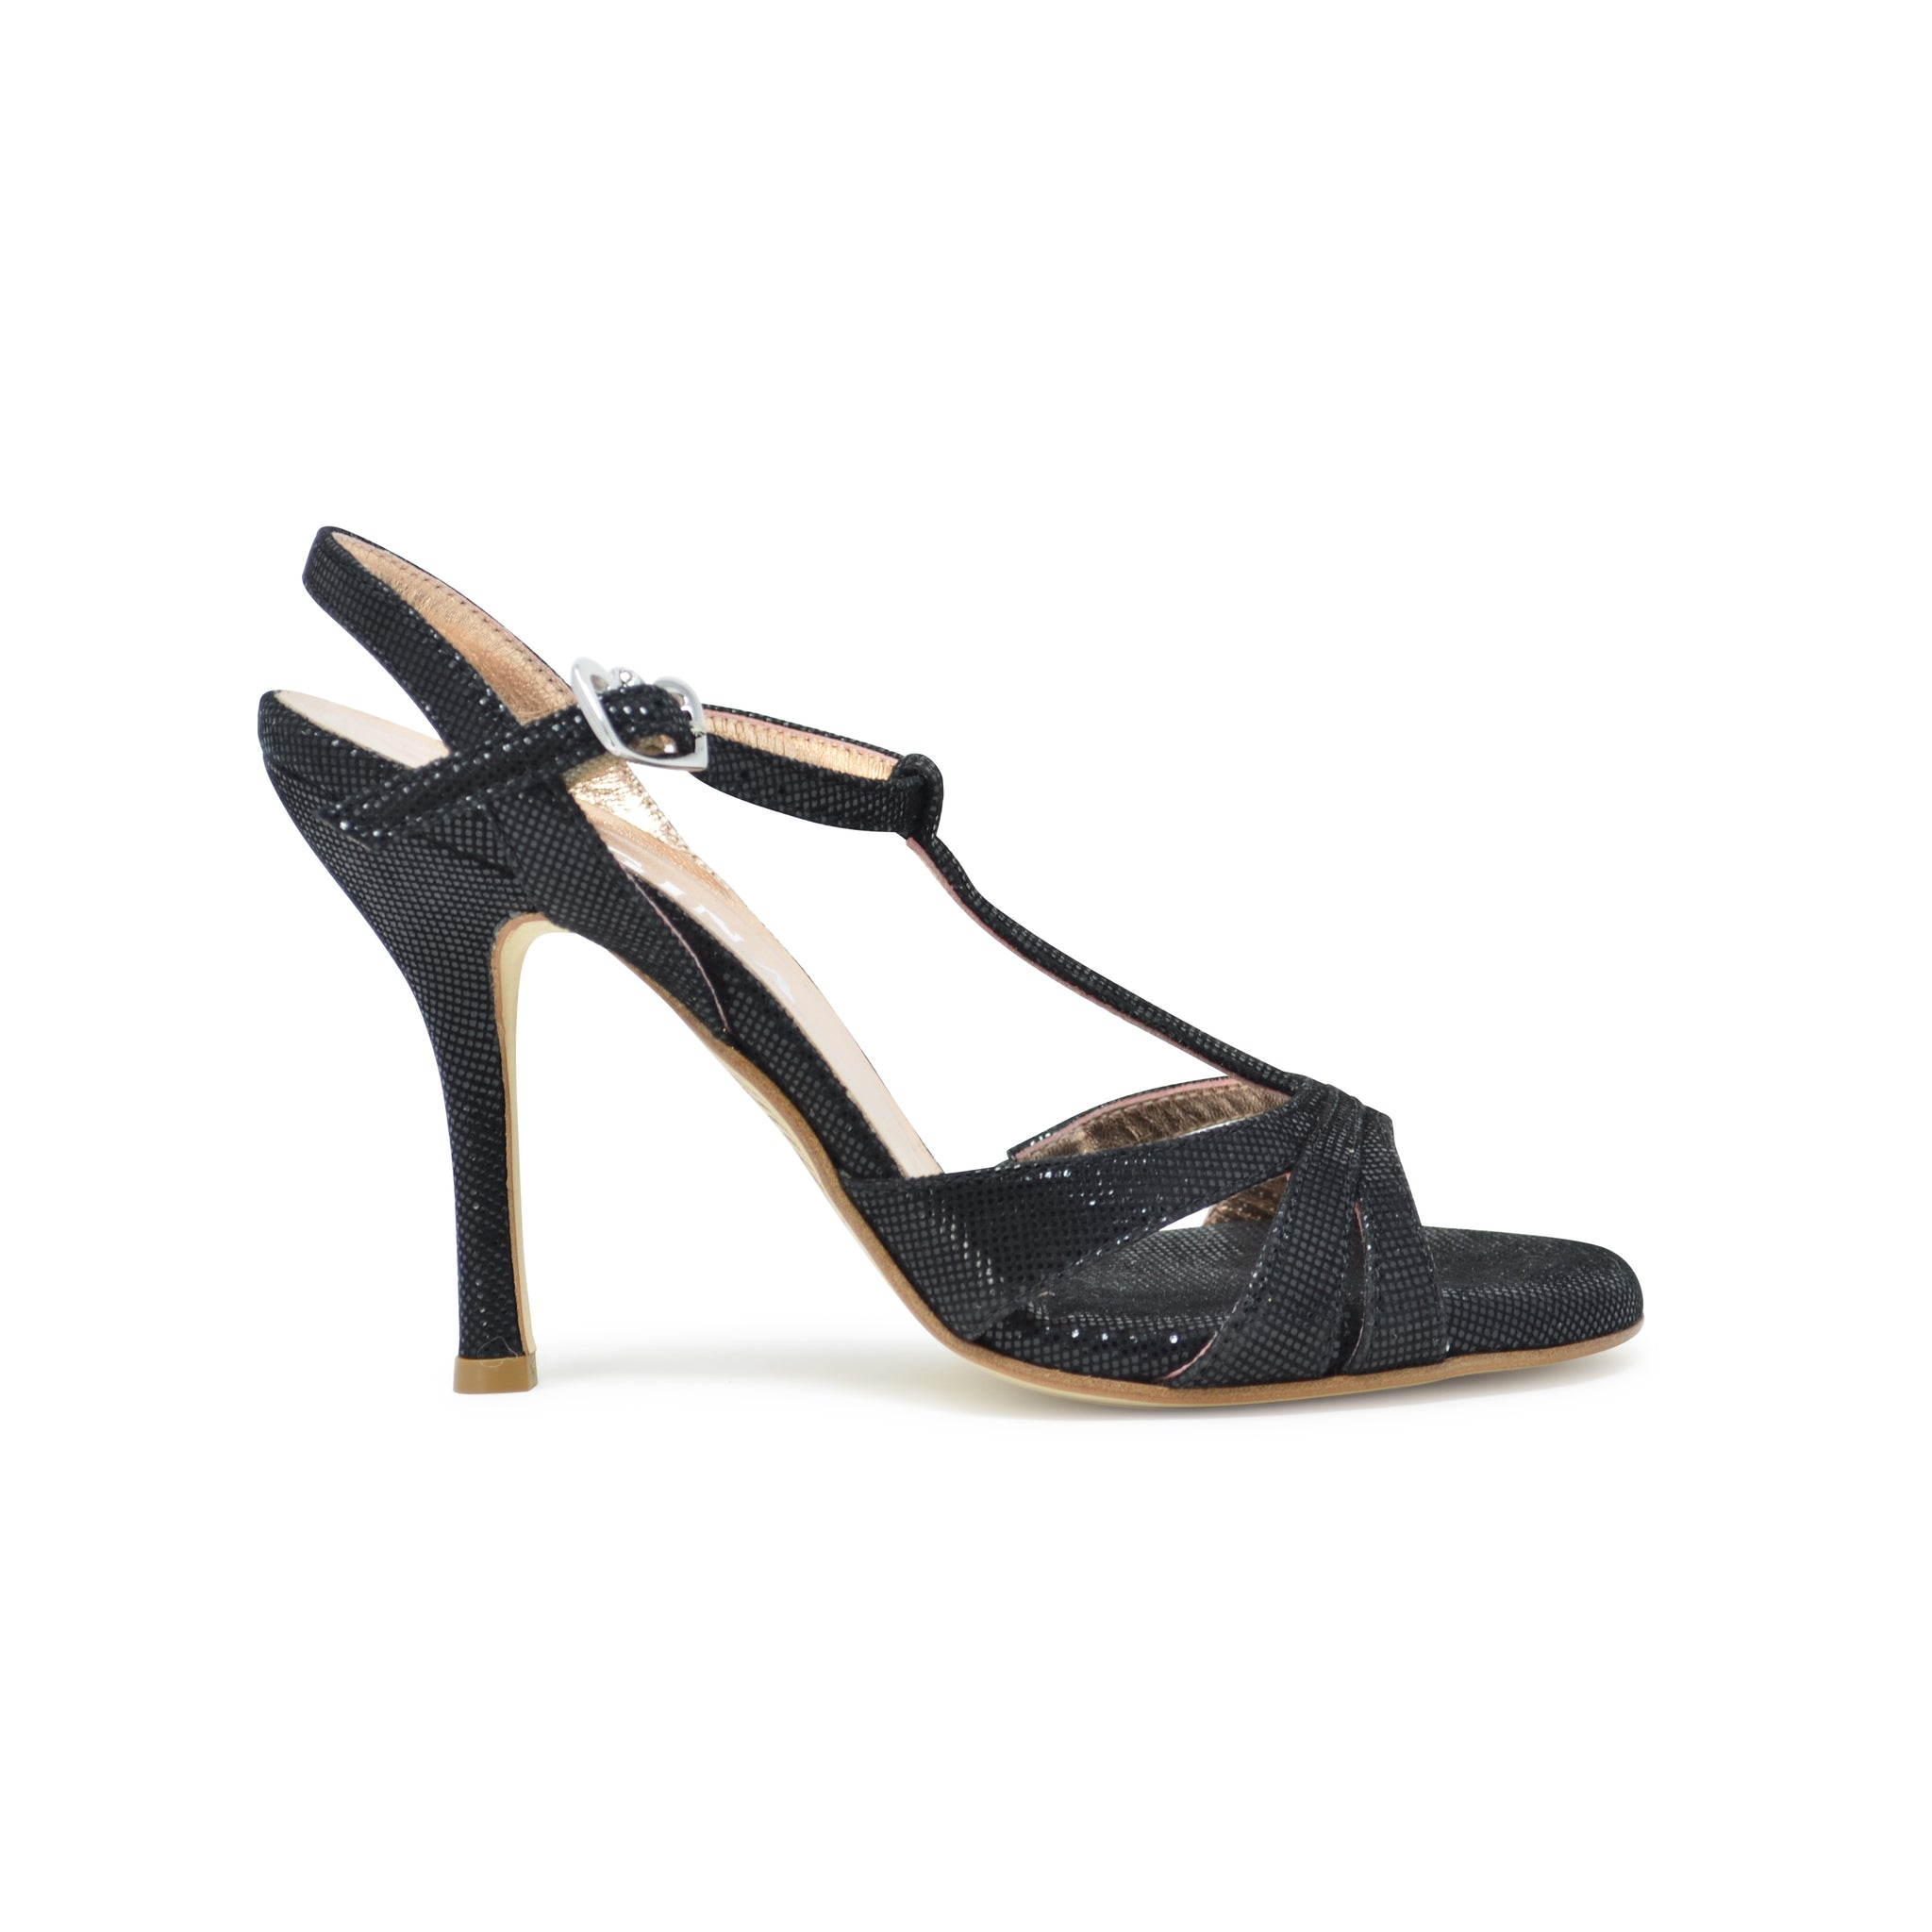 Size 10 - Olivia in Shimmery Black Leather - Regina